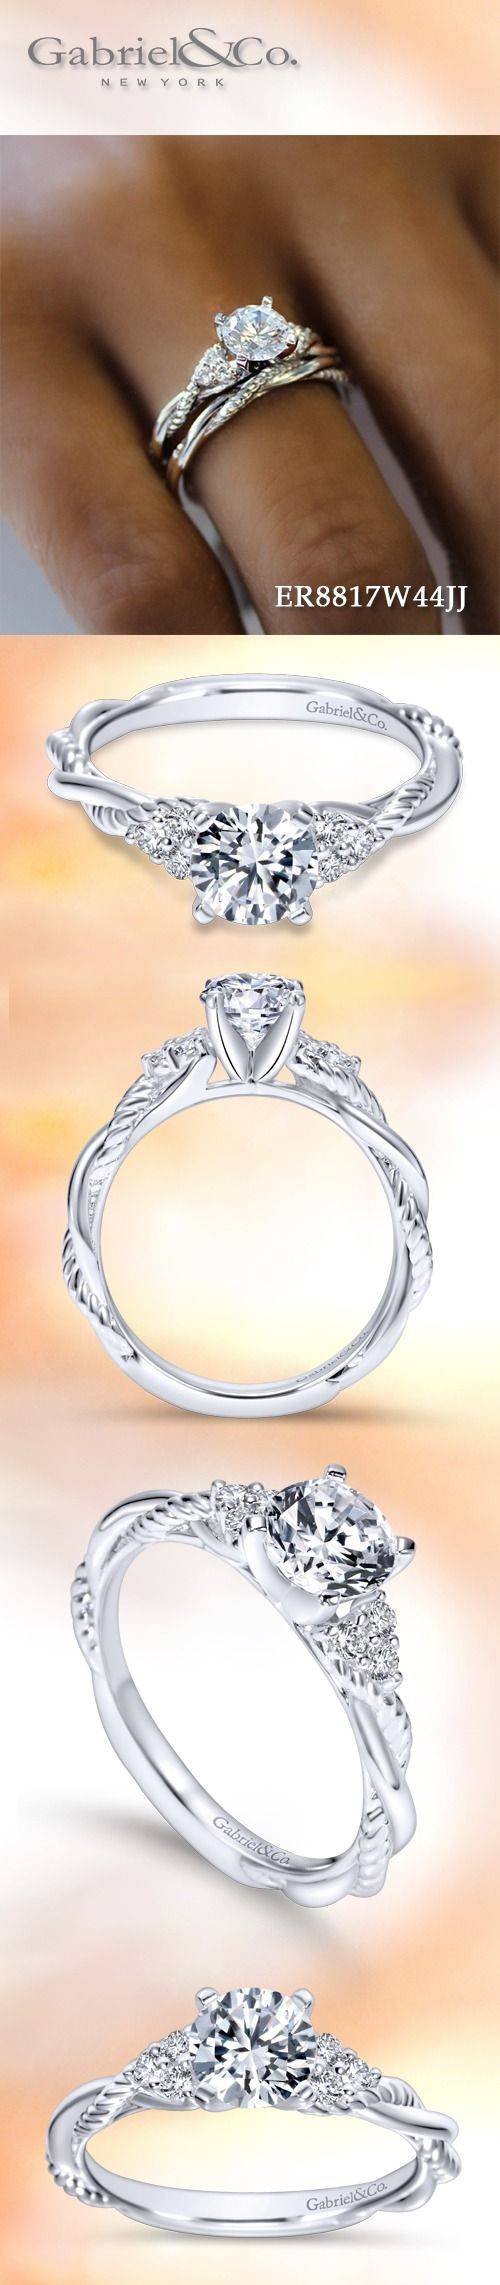 Voted #1 most preferred fine jewelry brand. 14k White Gold Round Twisted  Engagement Ring